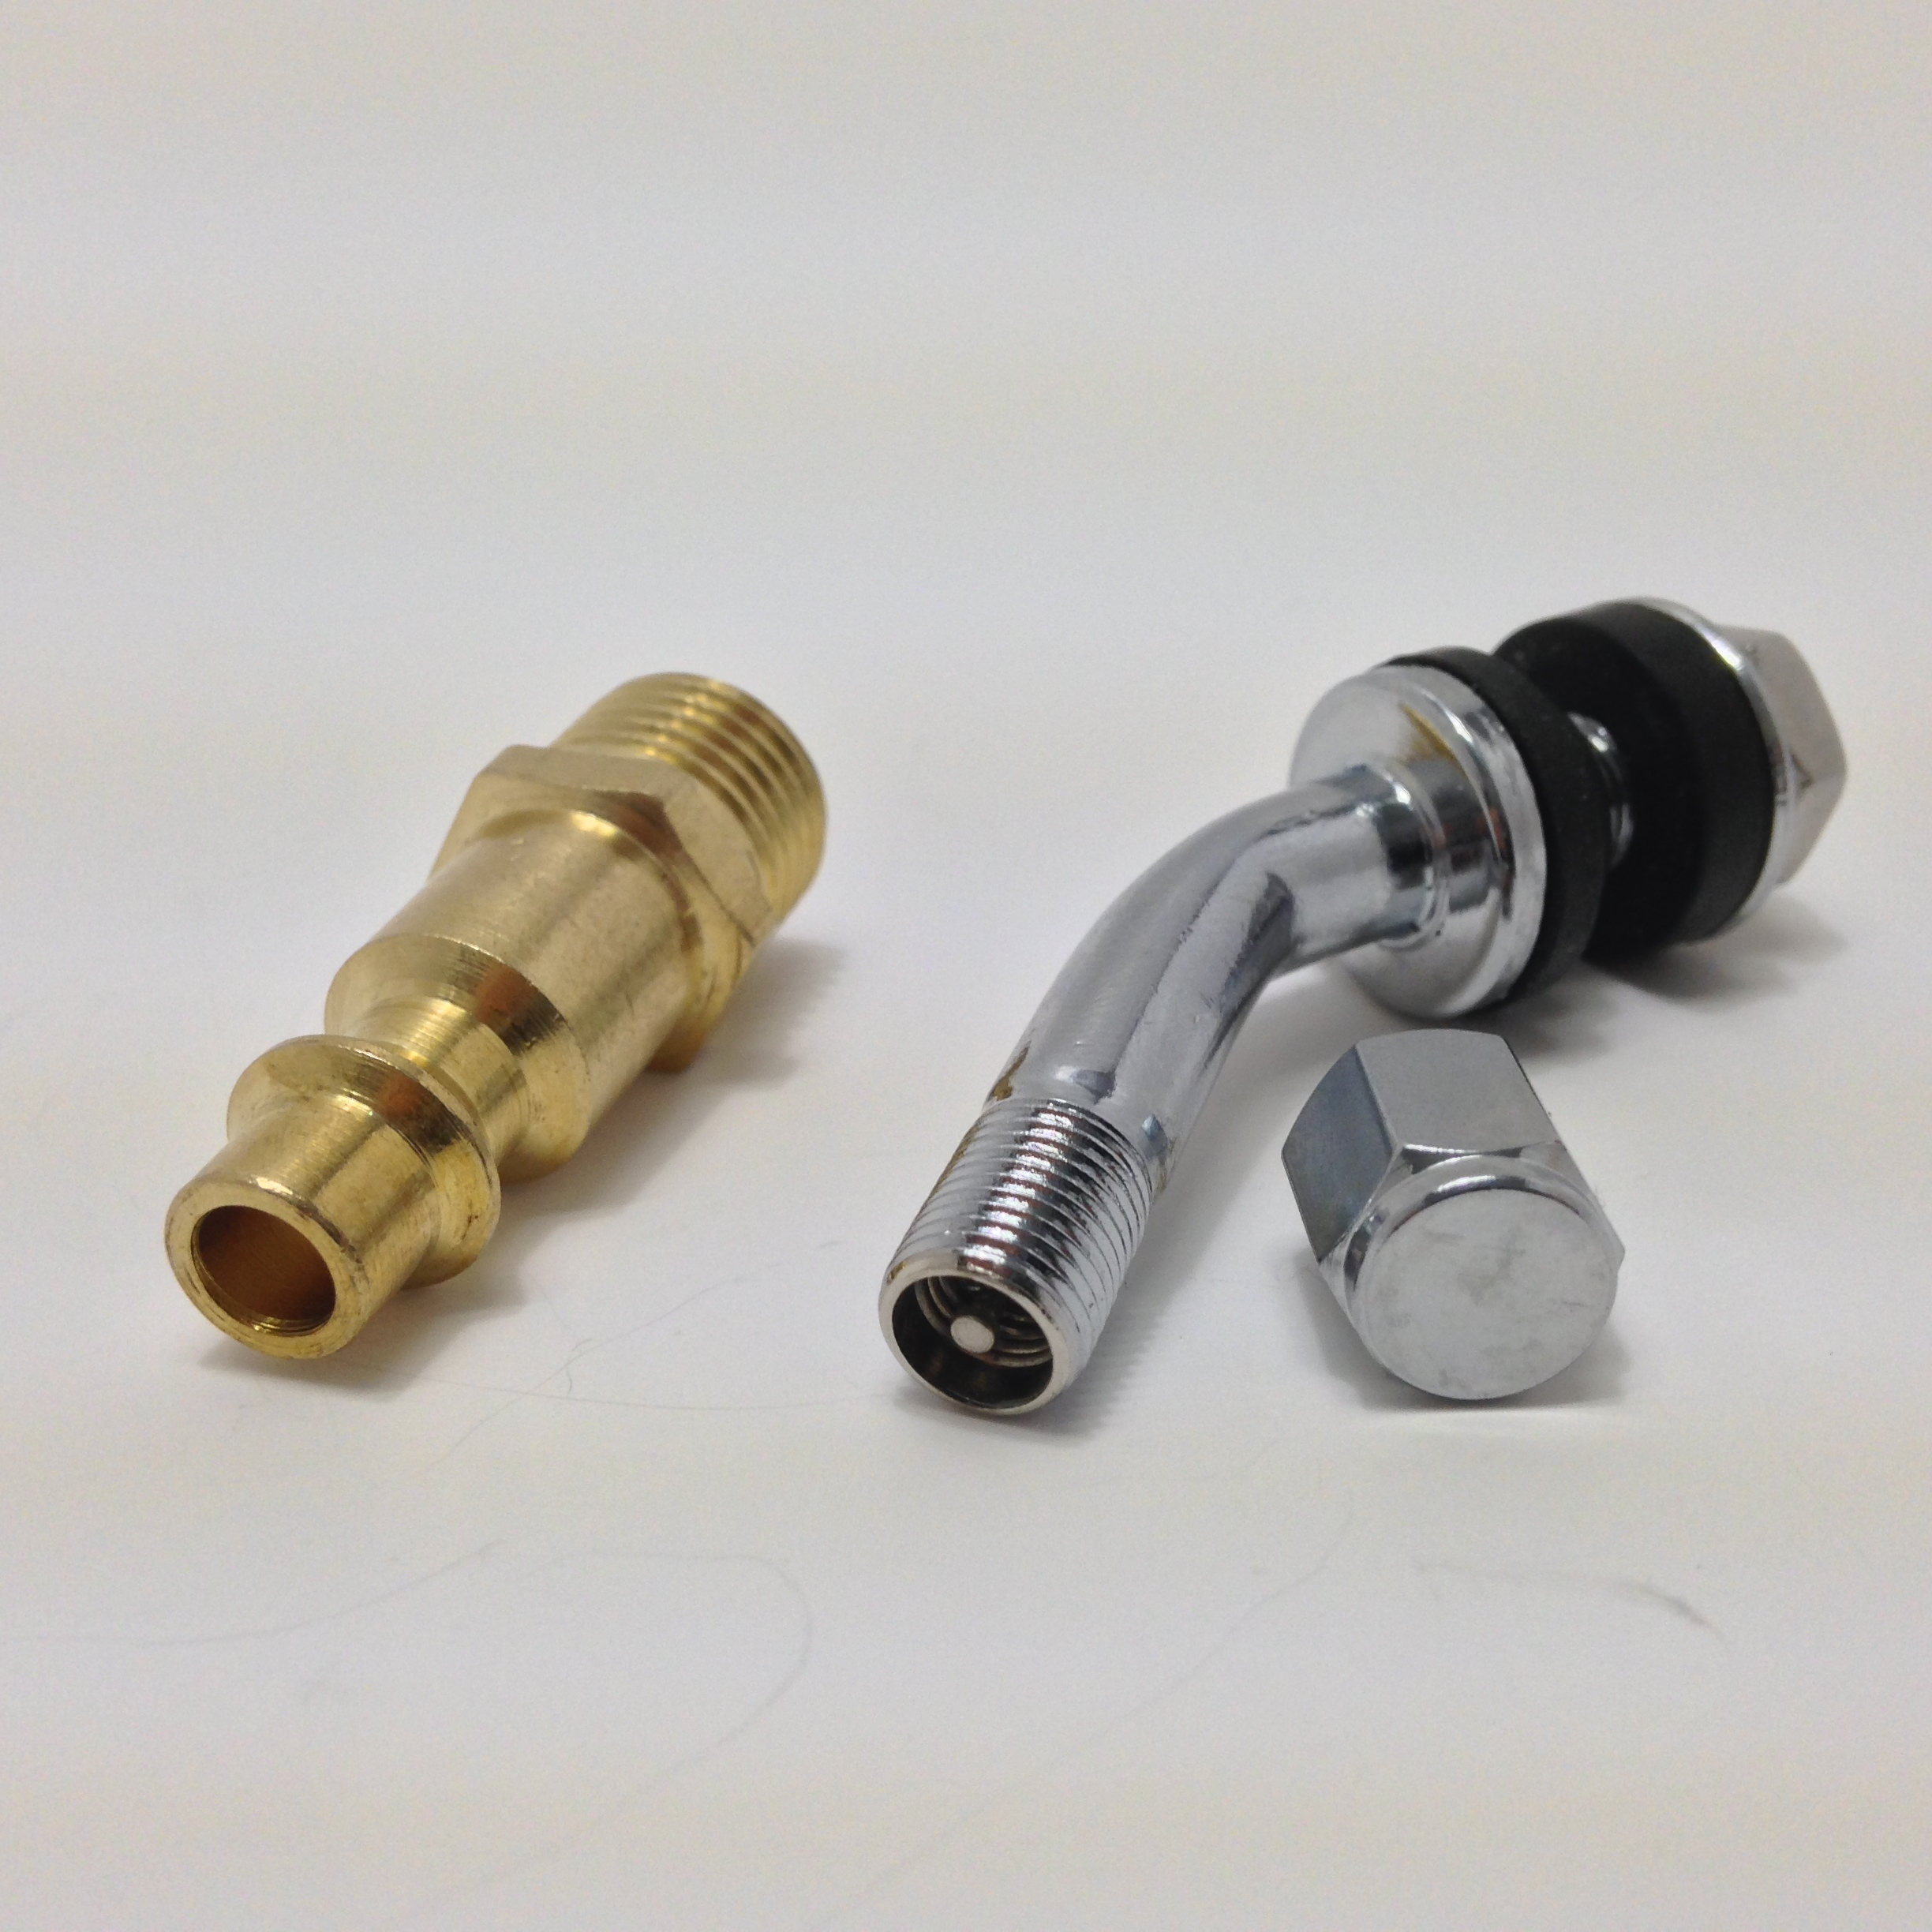 Boost Leak Testers Tire Valve Stem NPT compressor Fitting